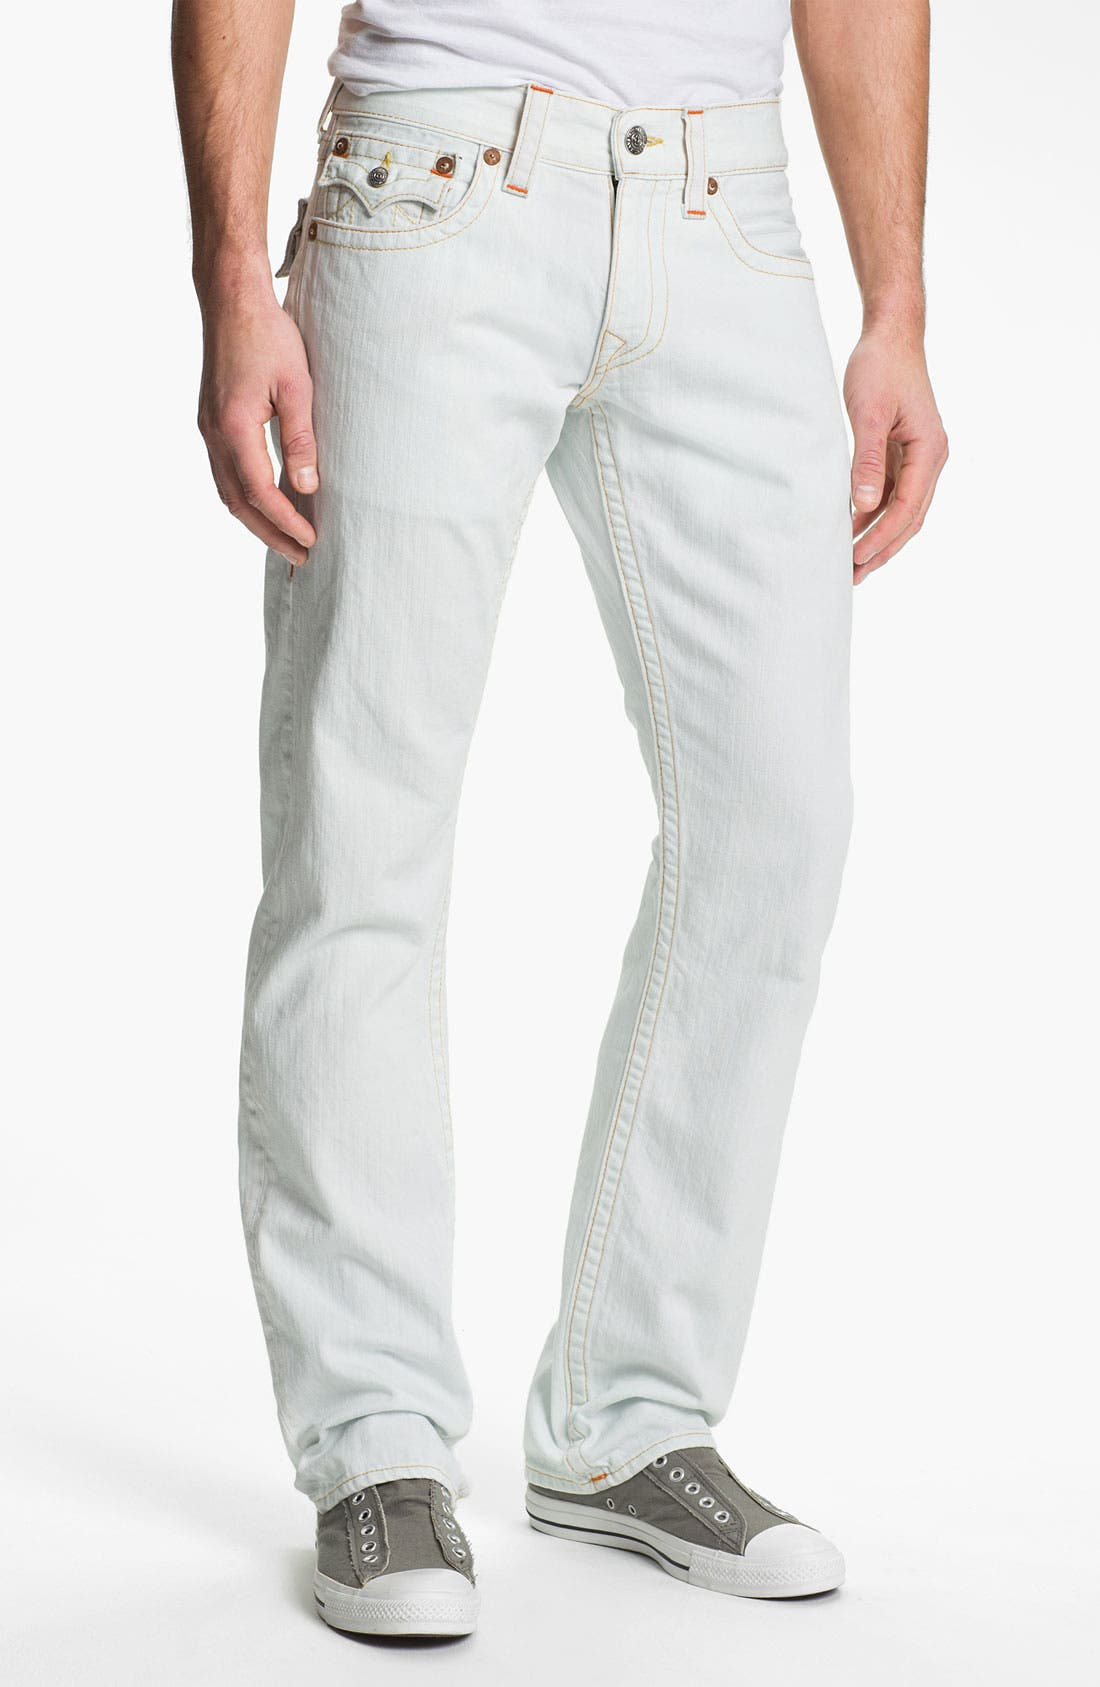 Alternate Image 2  - True Religion Brand Jeans 'Ricky' Straight Leg Jeans (Bleached) (Online Exclusive)